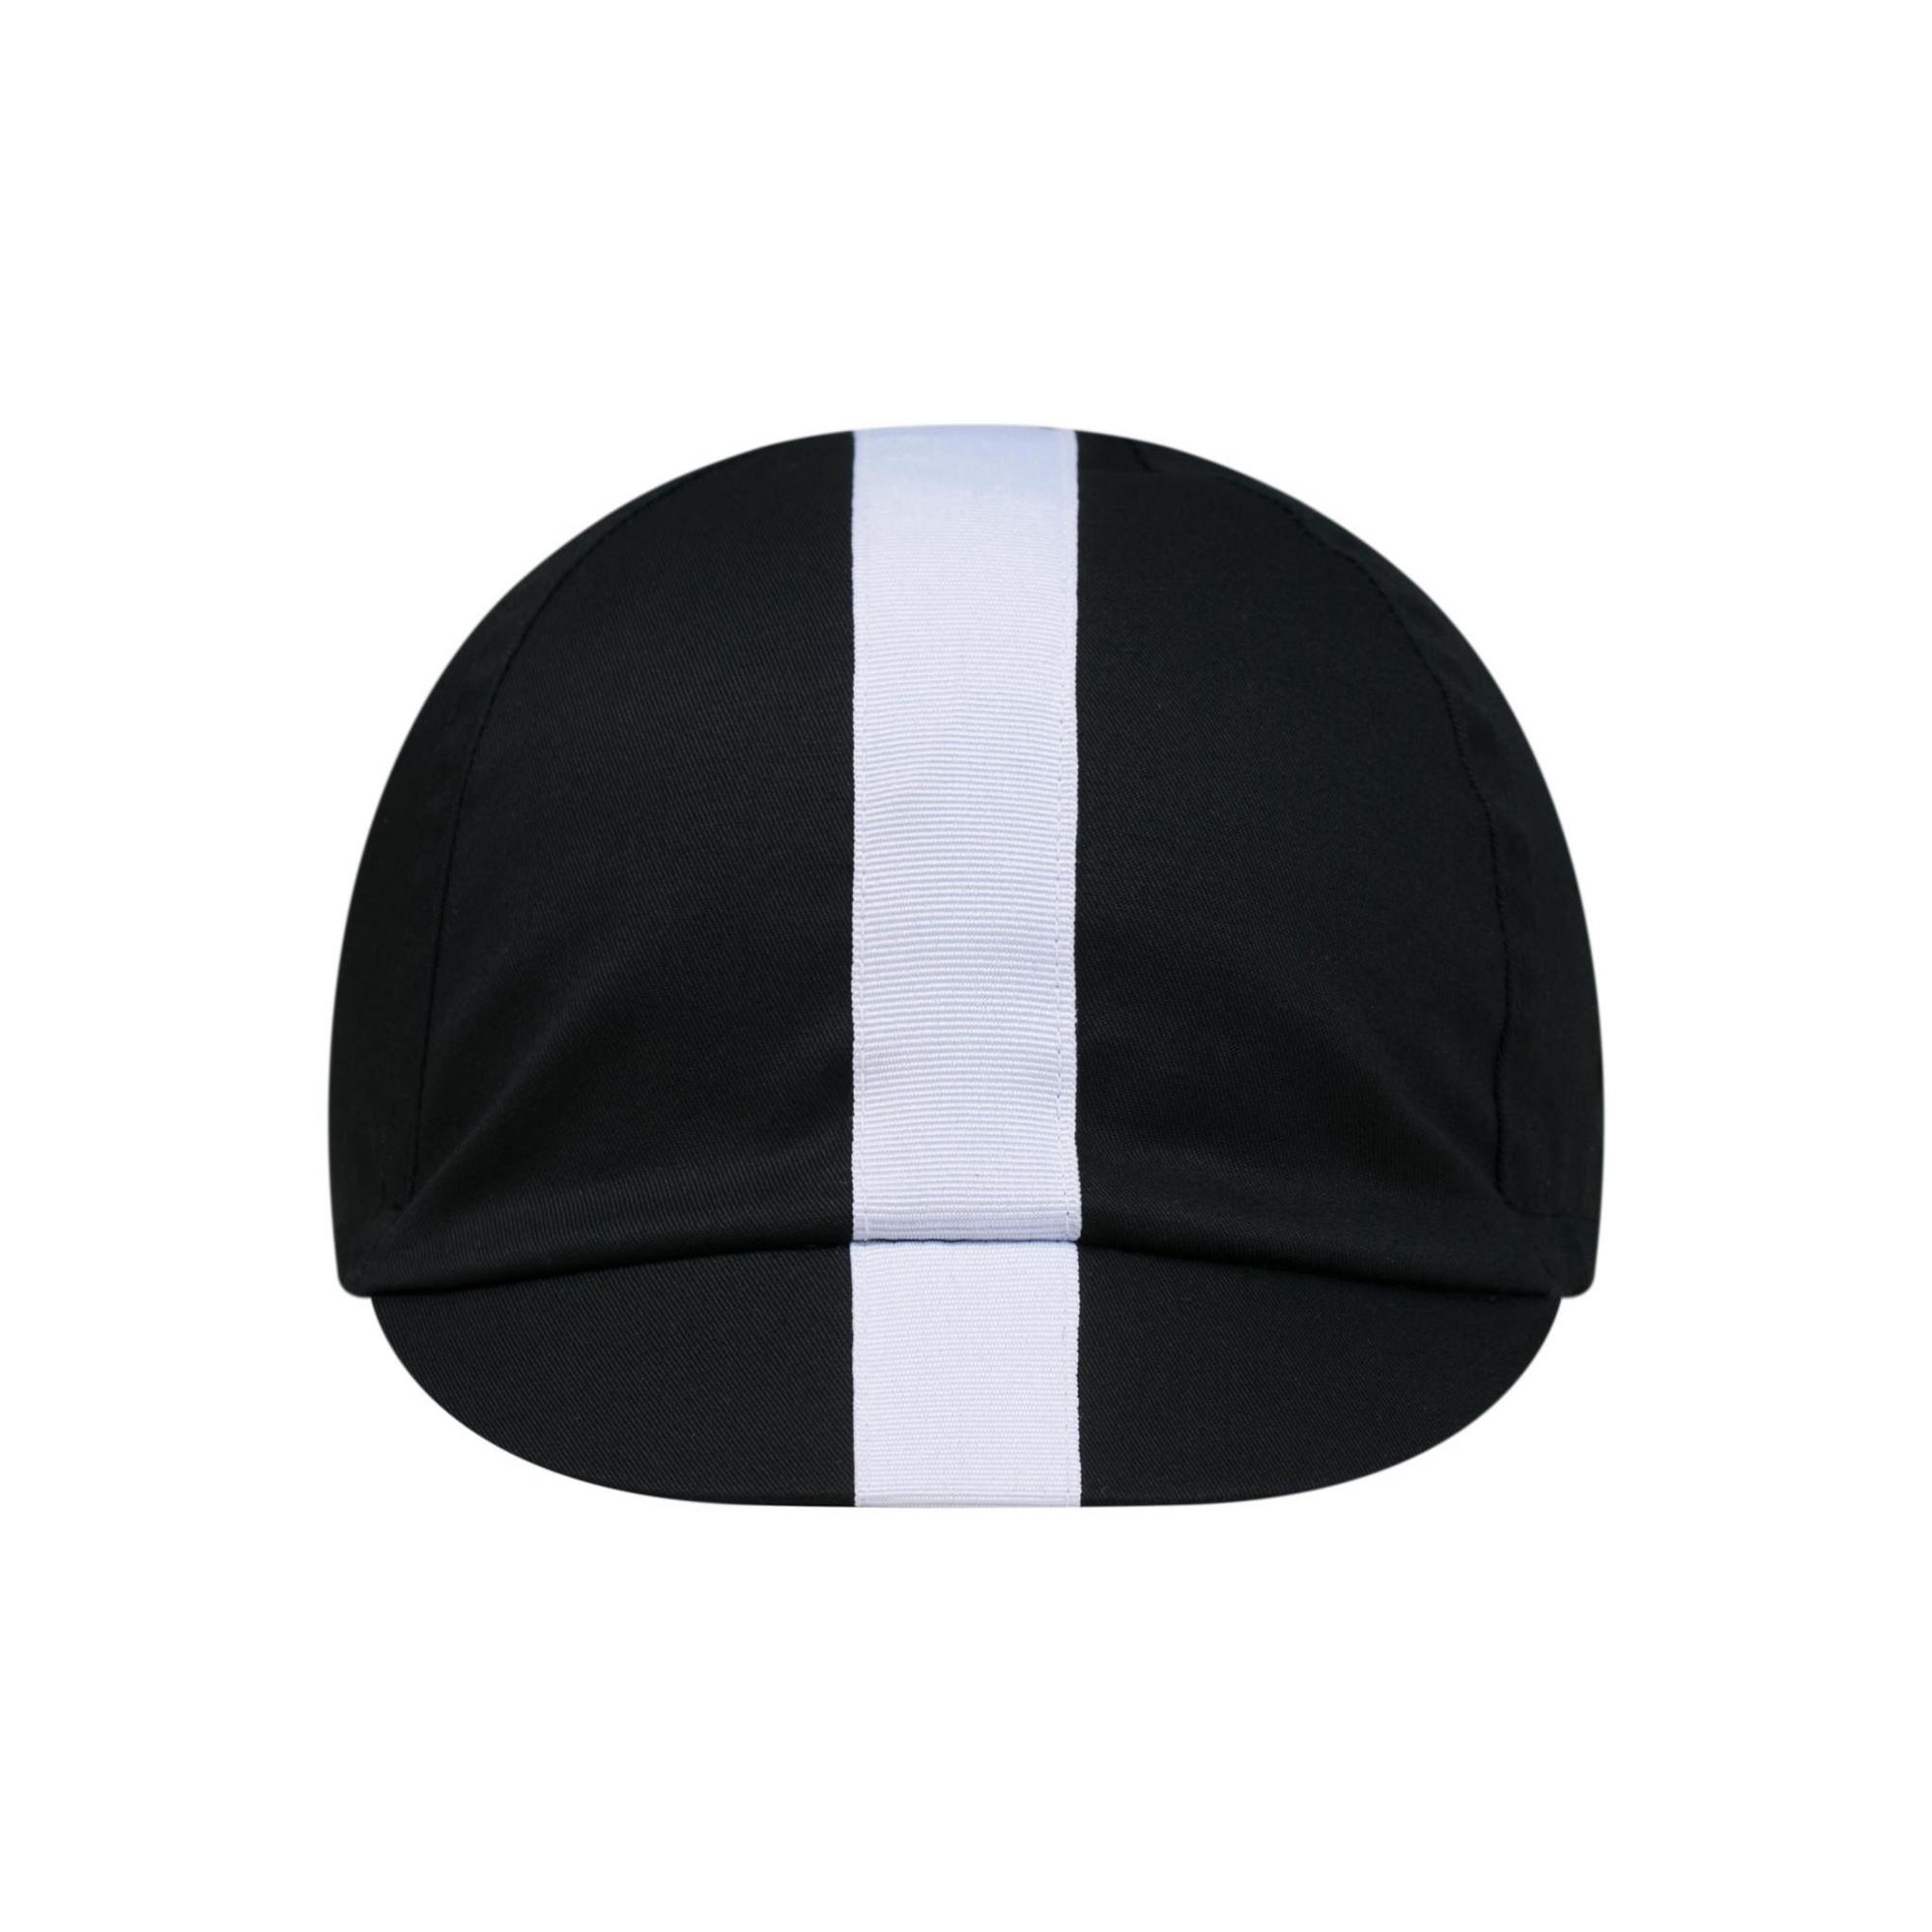 Rapha Rapha Cap II : Black/Pink : Medium/Large